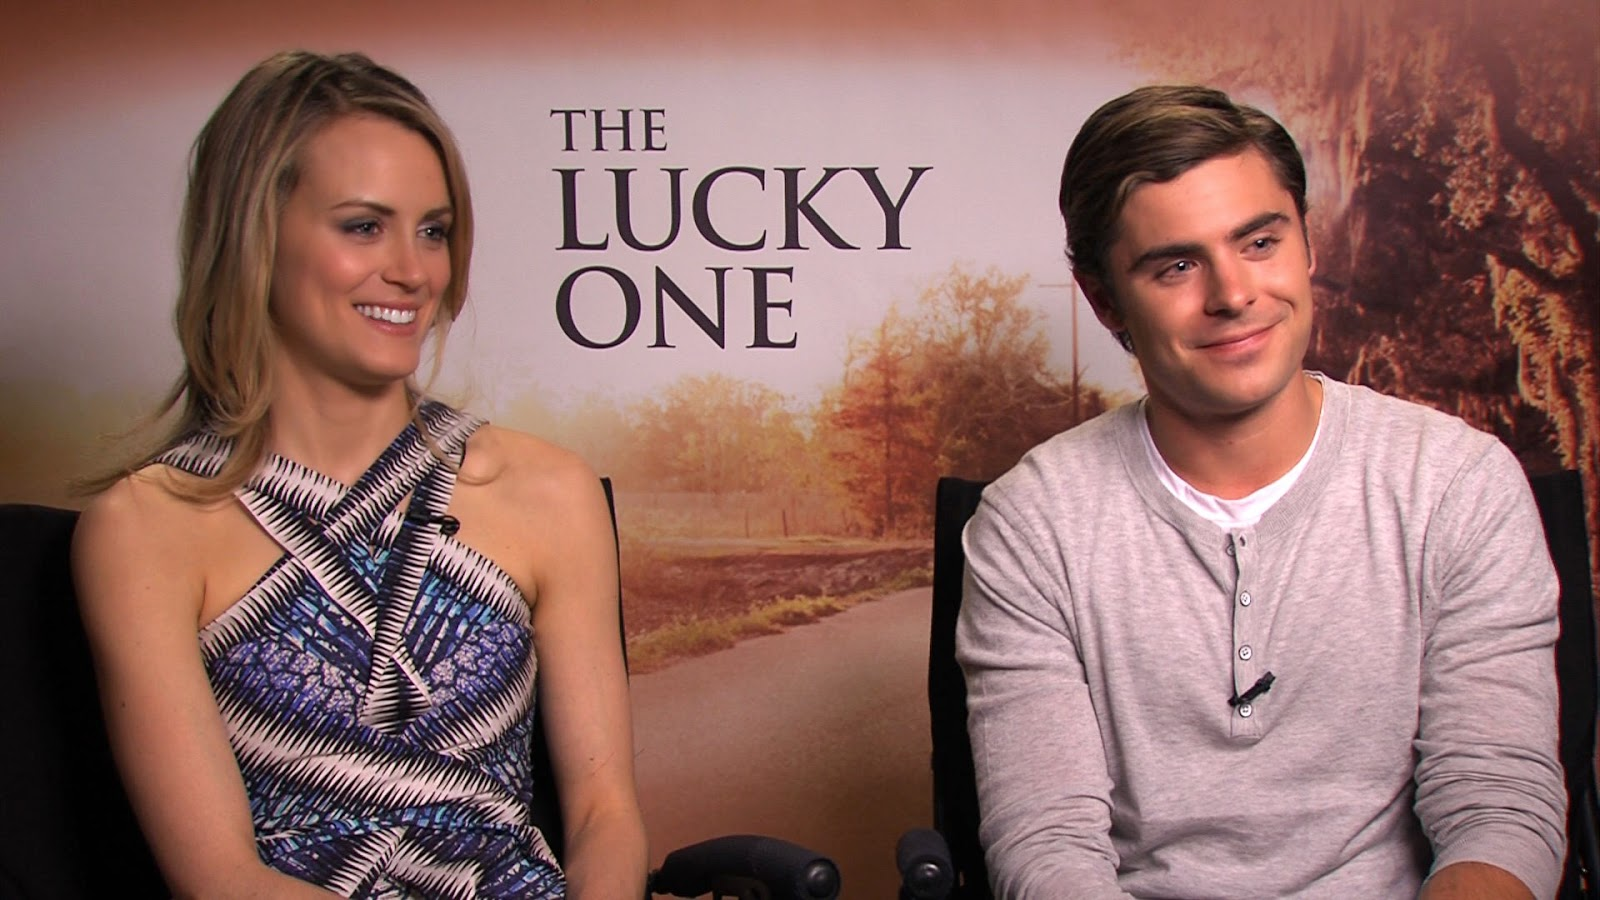 The lucky one movie age difference in dating